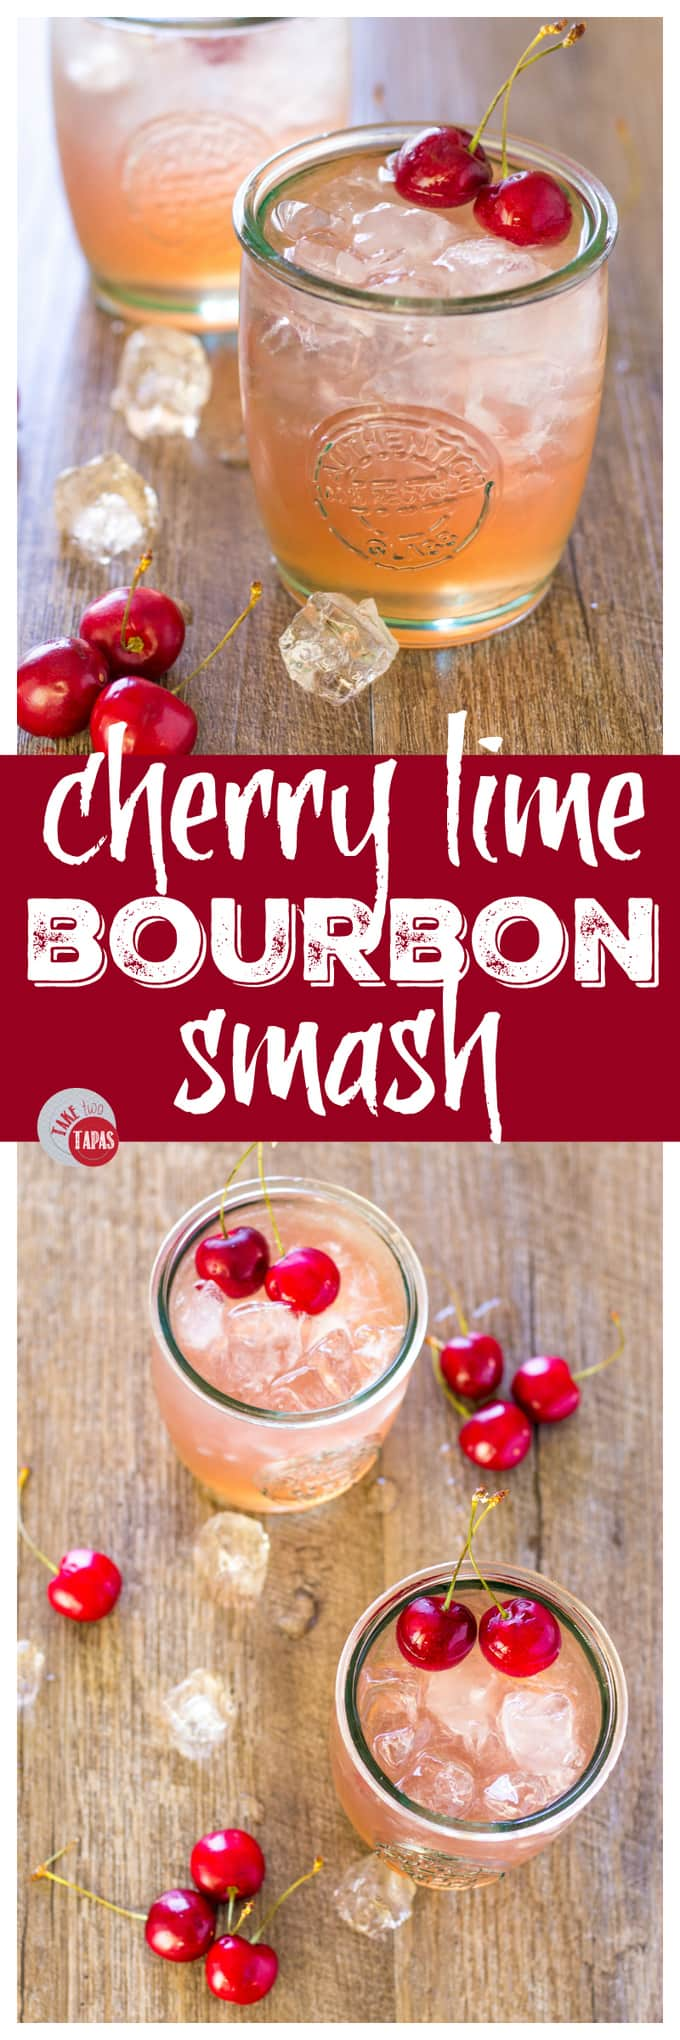 Summer Cocktails of Cherry Lime Bourbon Smash | Take Two Tapas | #Cherry #lime #Bourbon #Cocktail #Smash #3Ingredients #Summer